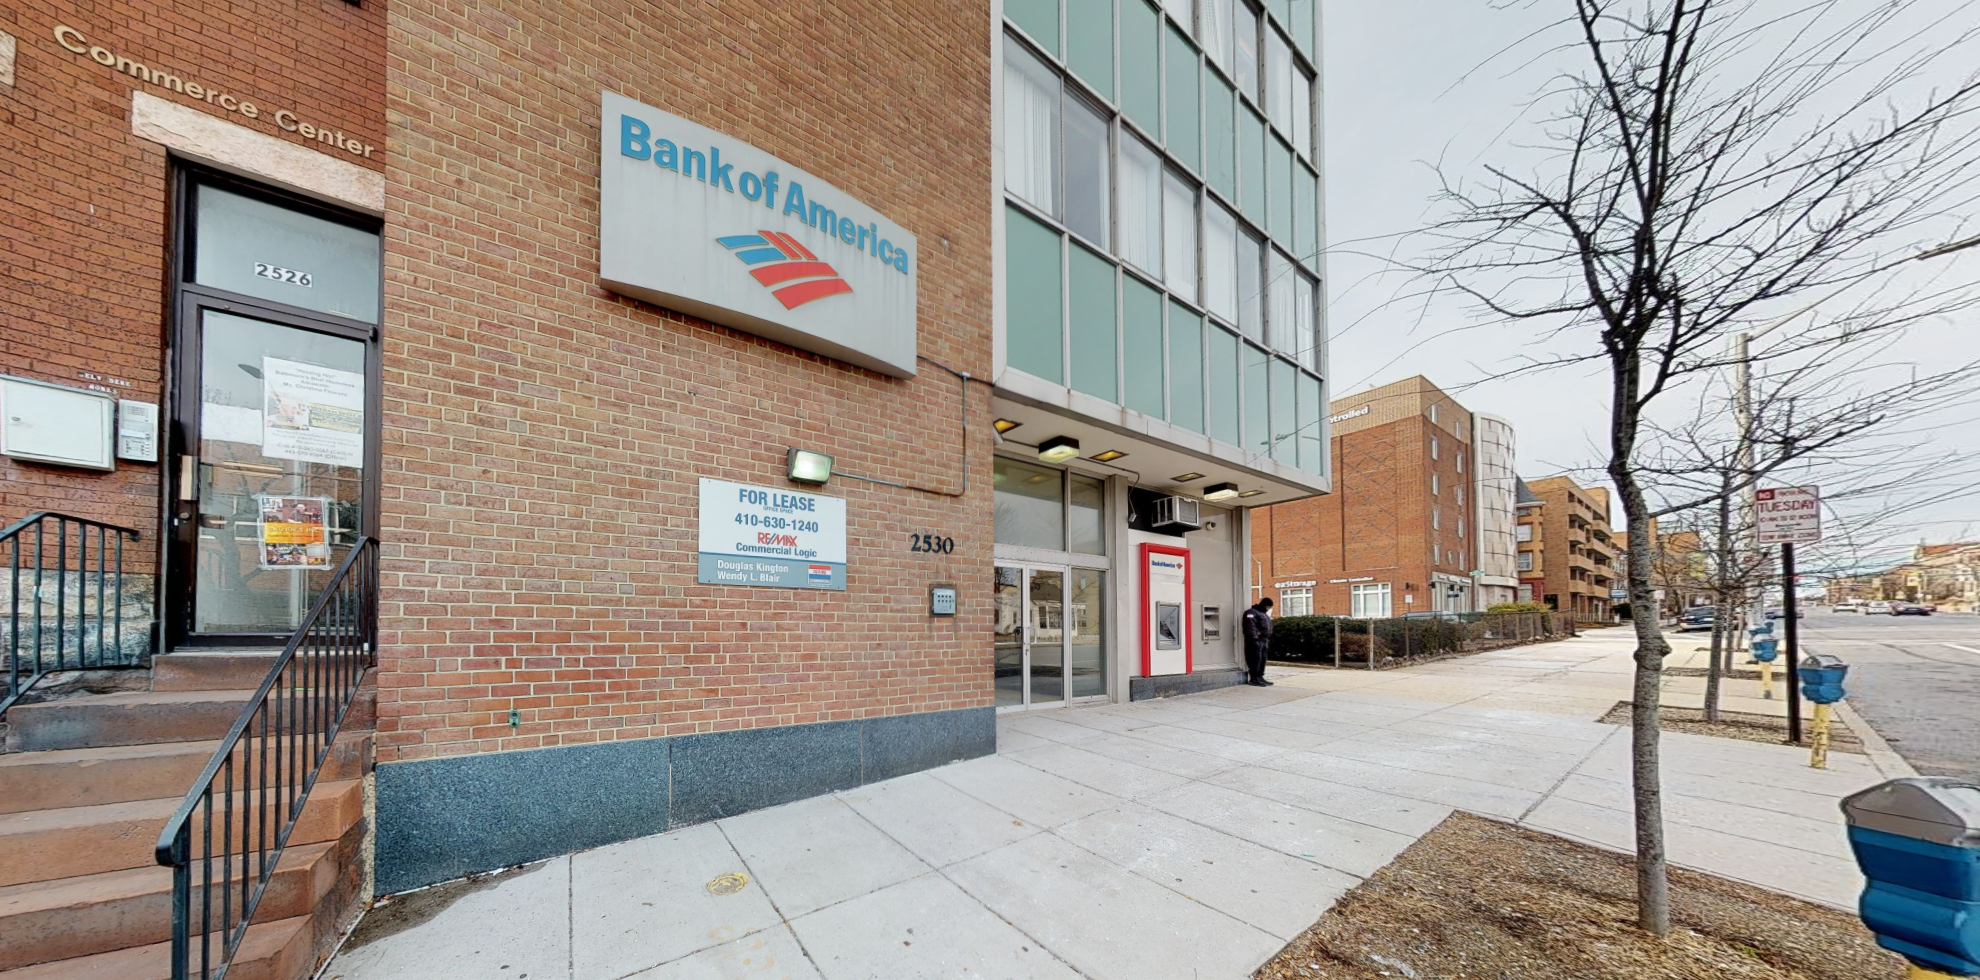 Bank of America financial center with drive-thru ATM | 2530 N Charles St, Baltimore, MD 21218